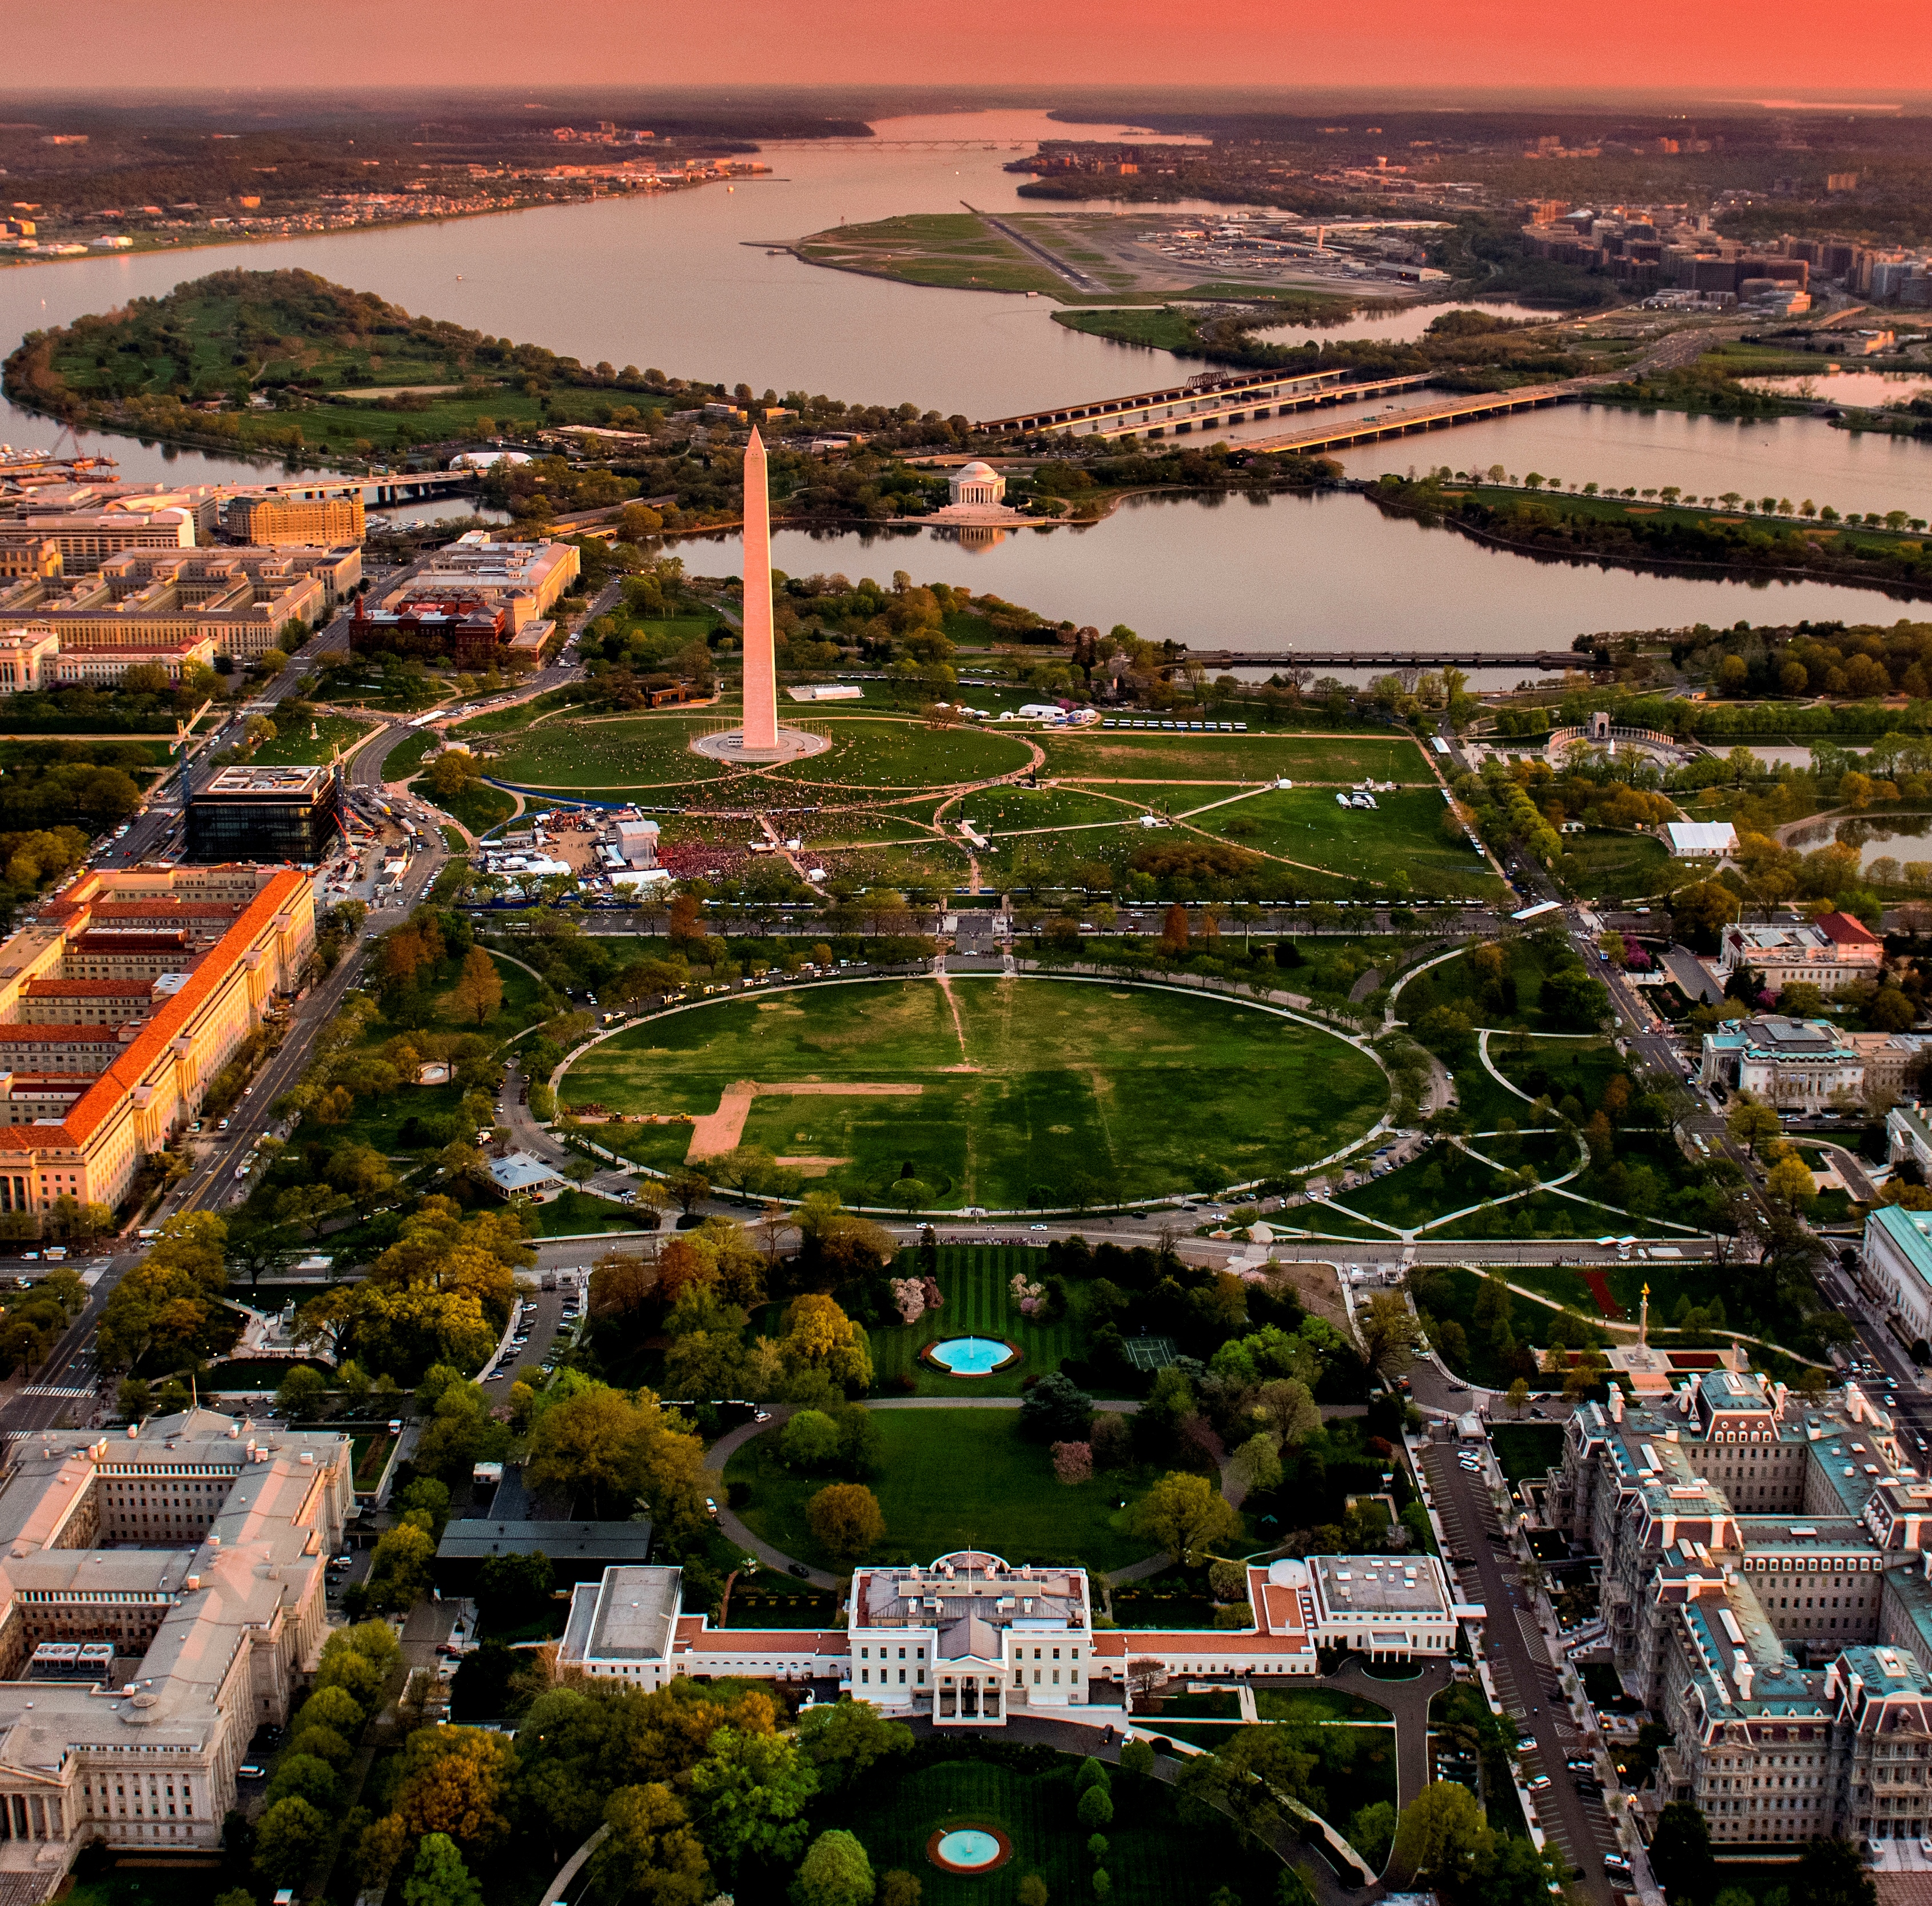 Aerial view of the National Mall and President's Park